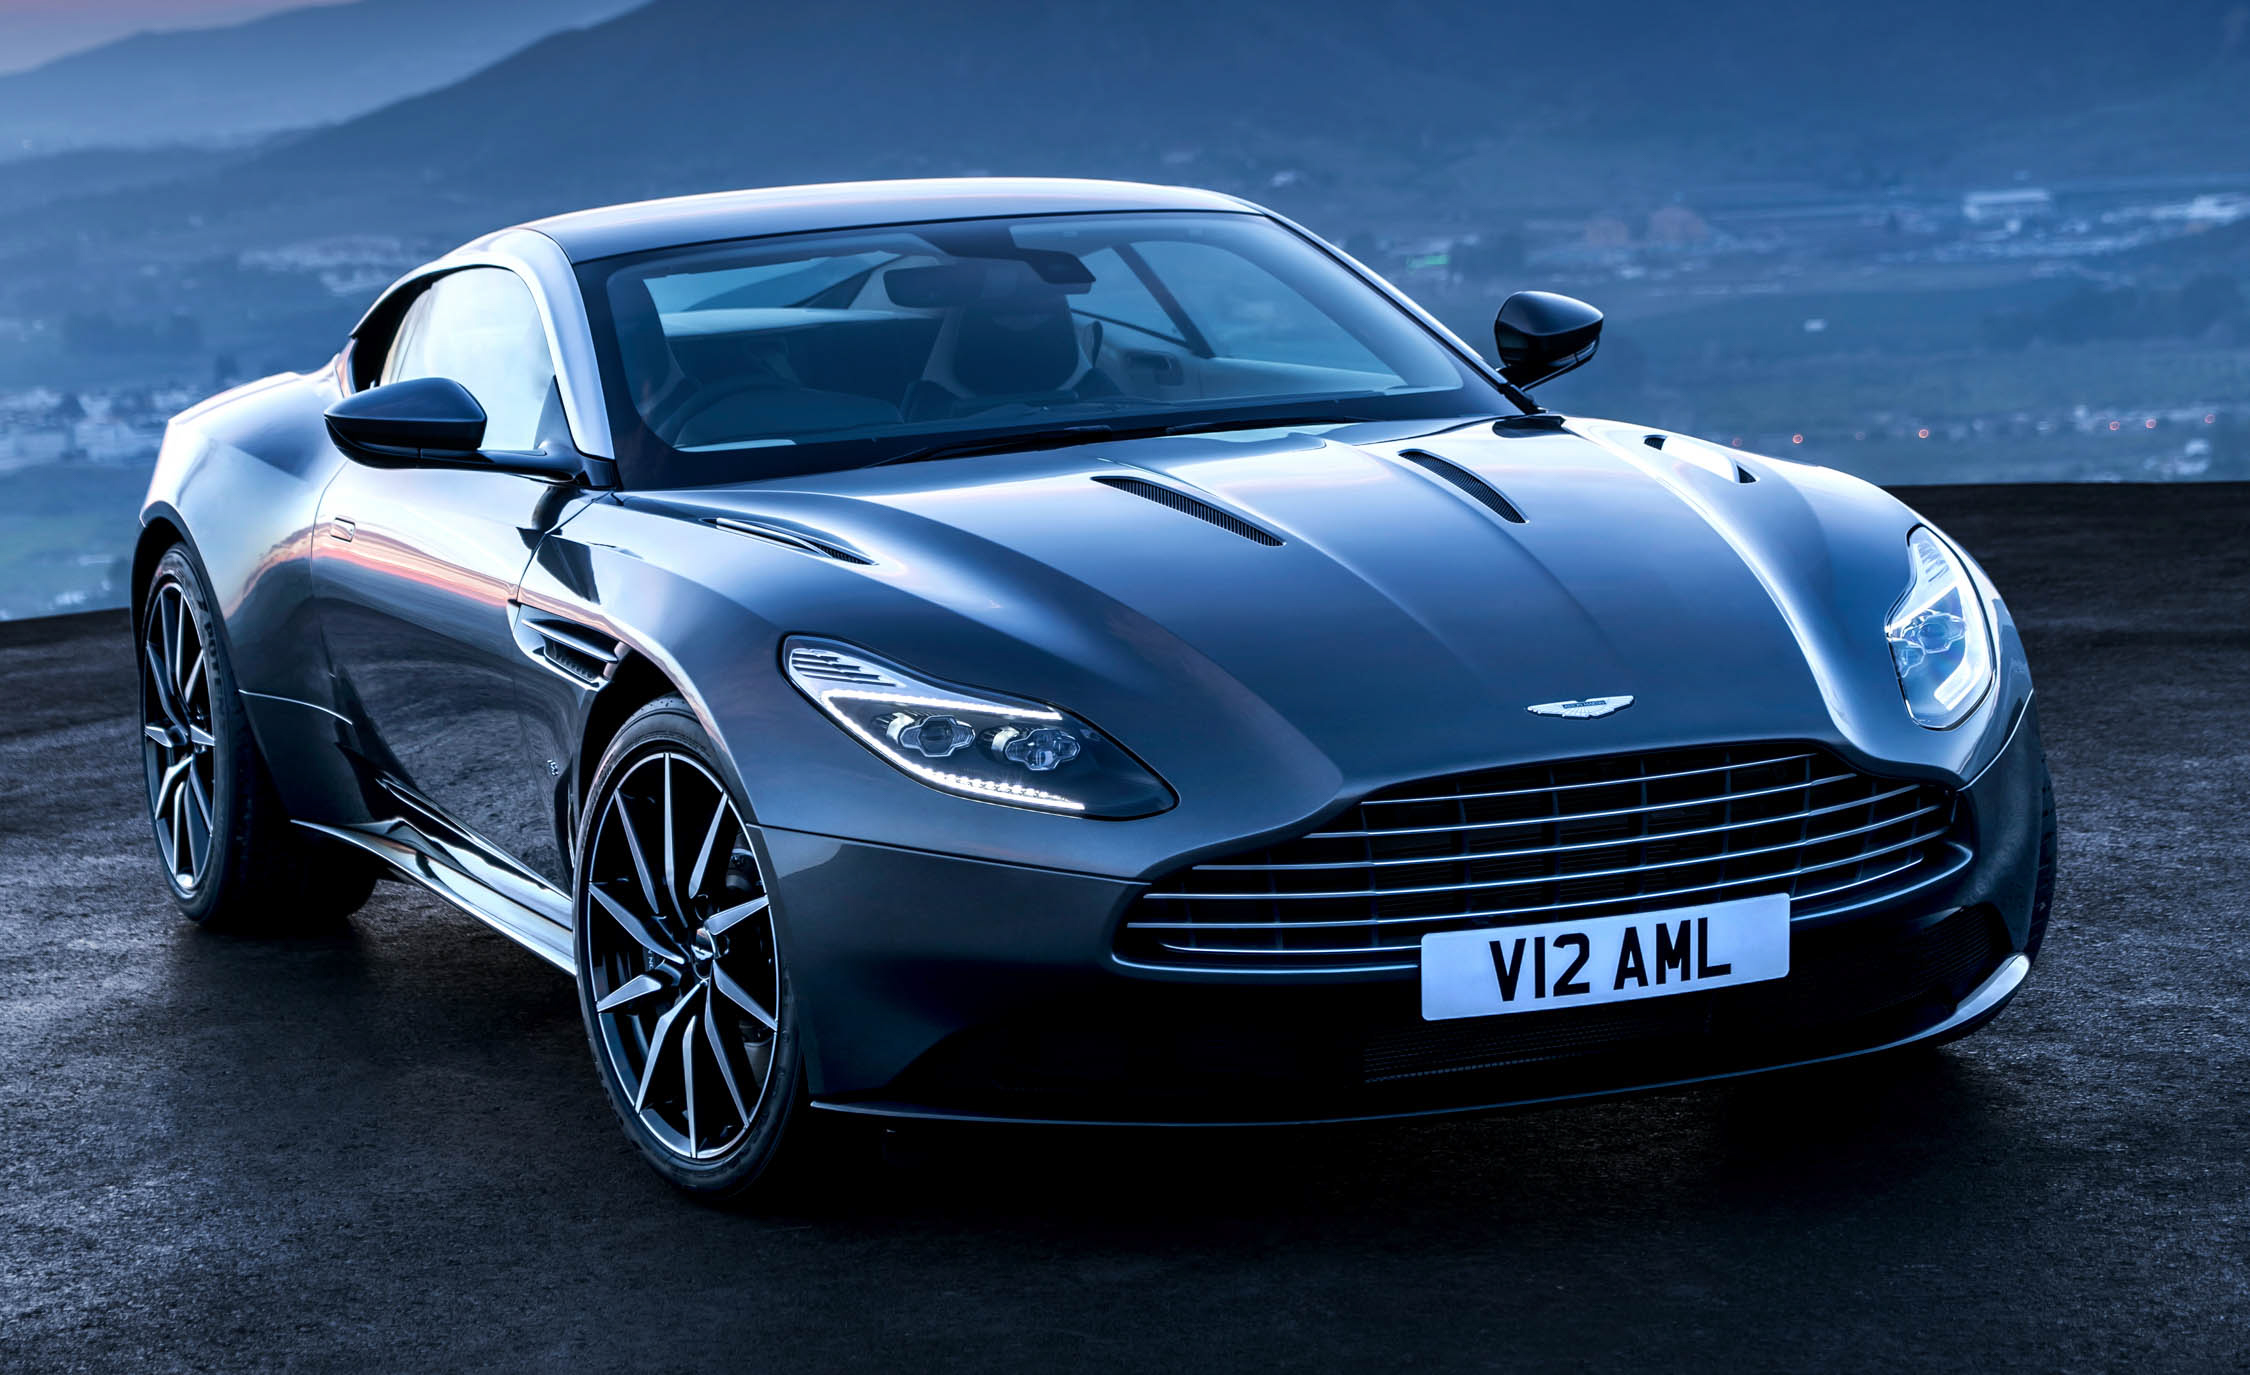 2017 Aston Martin Db11 Exterior (Photo 2 of 22)